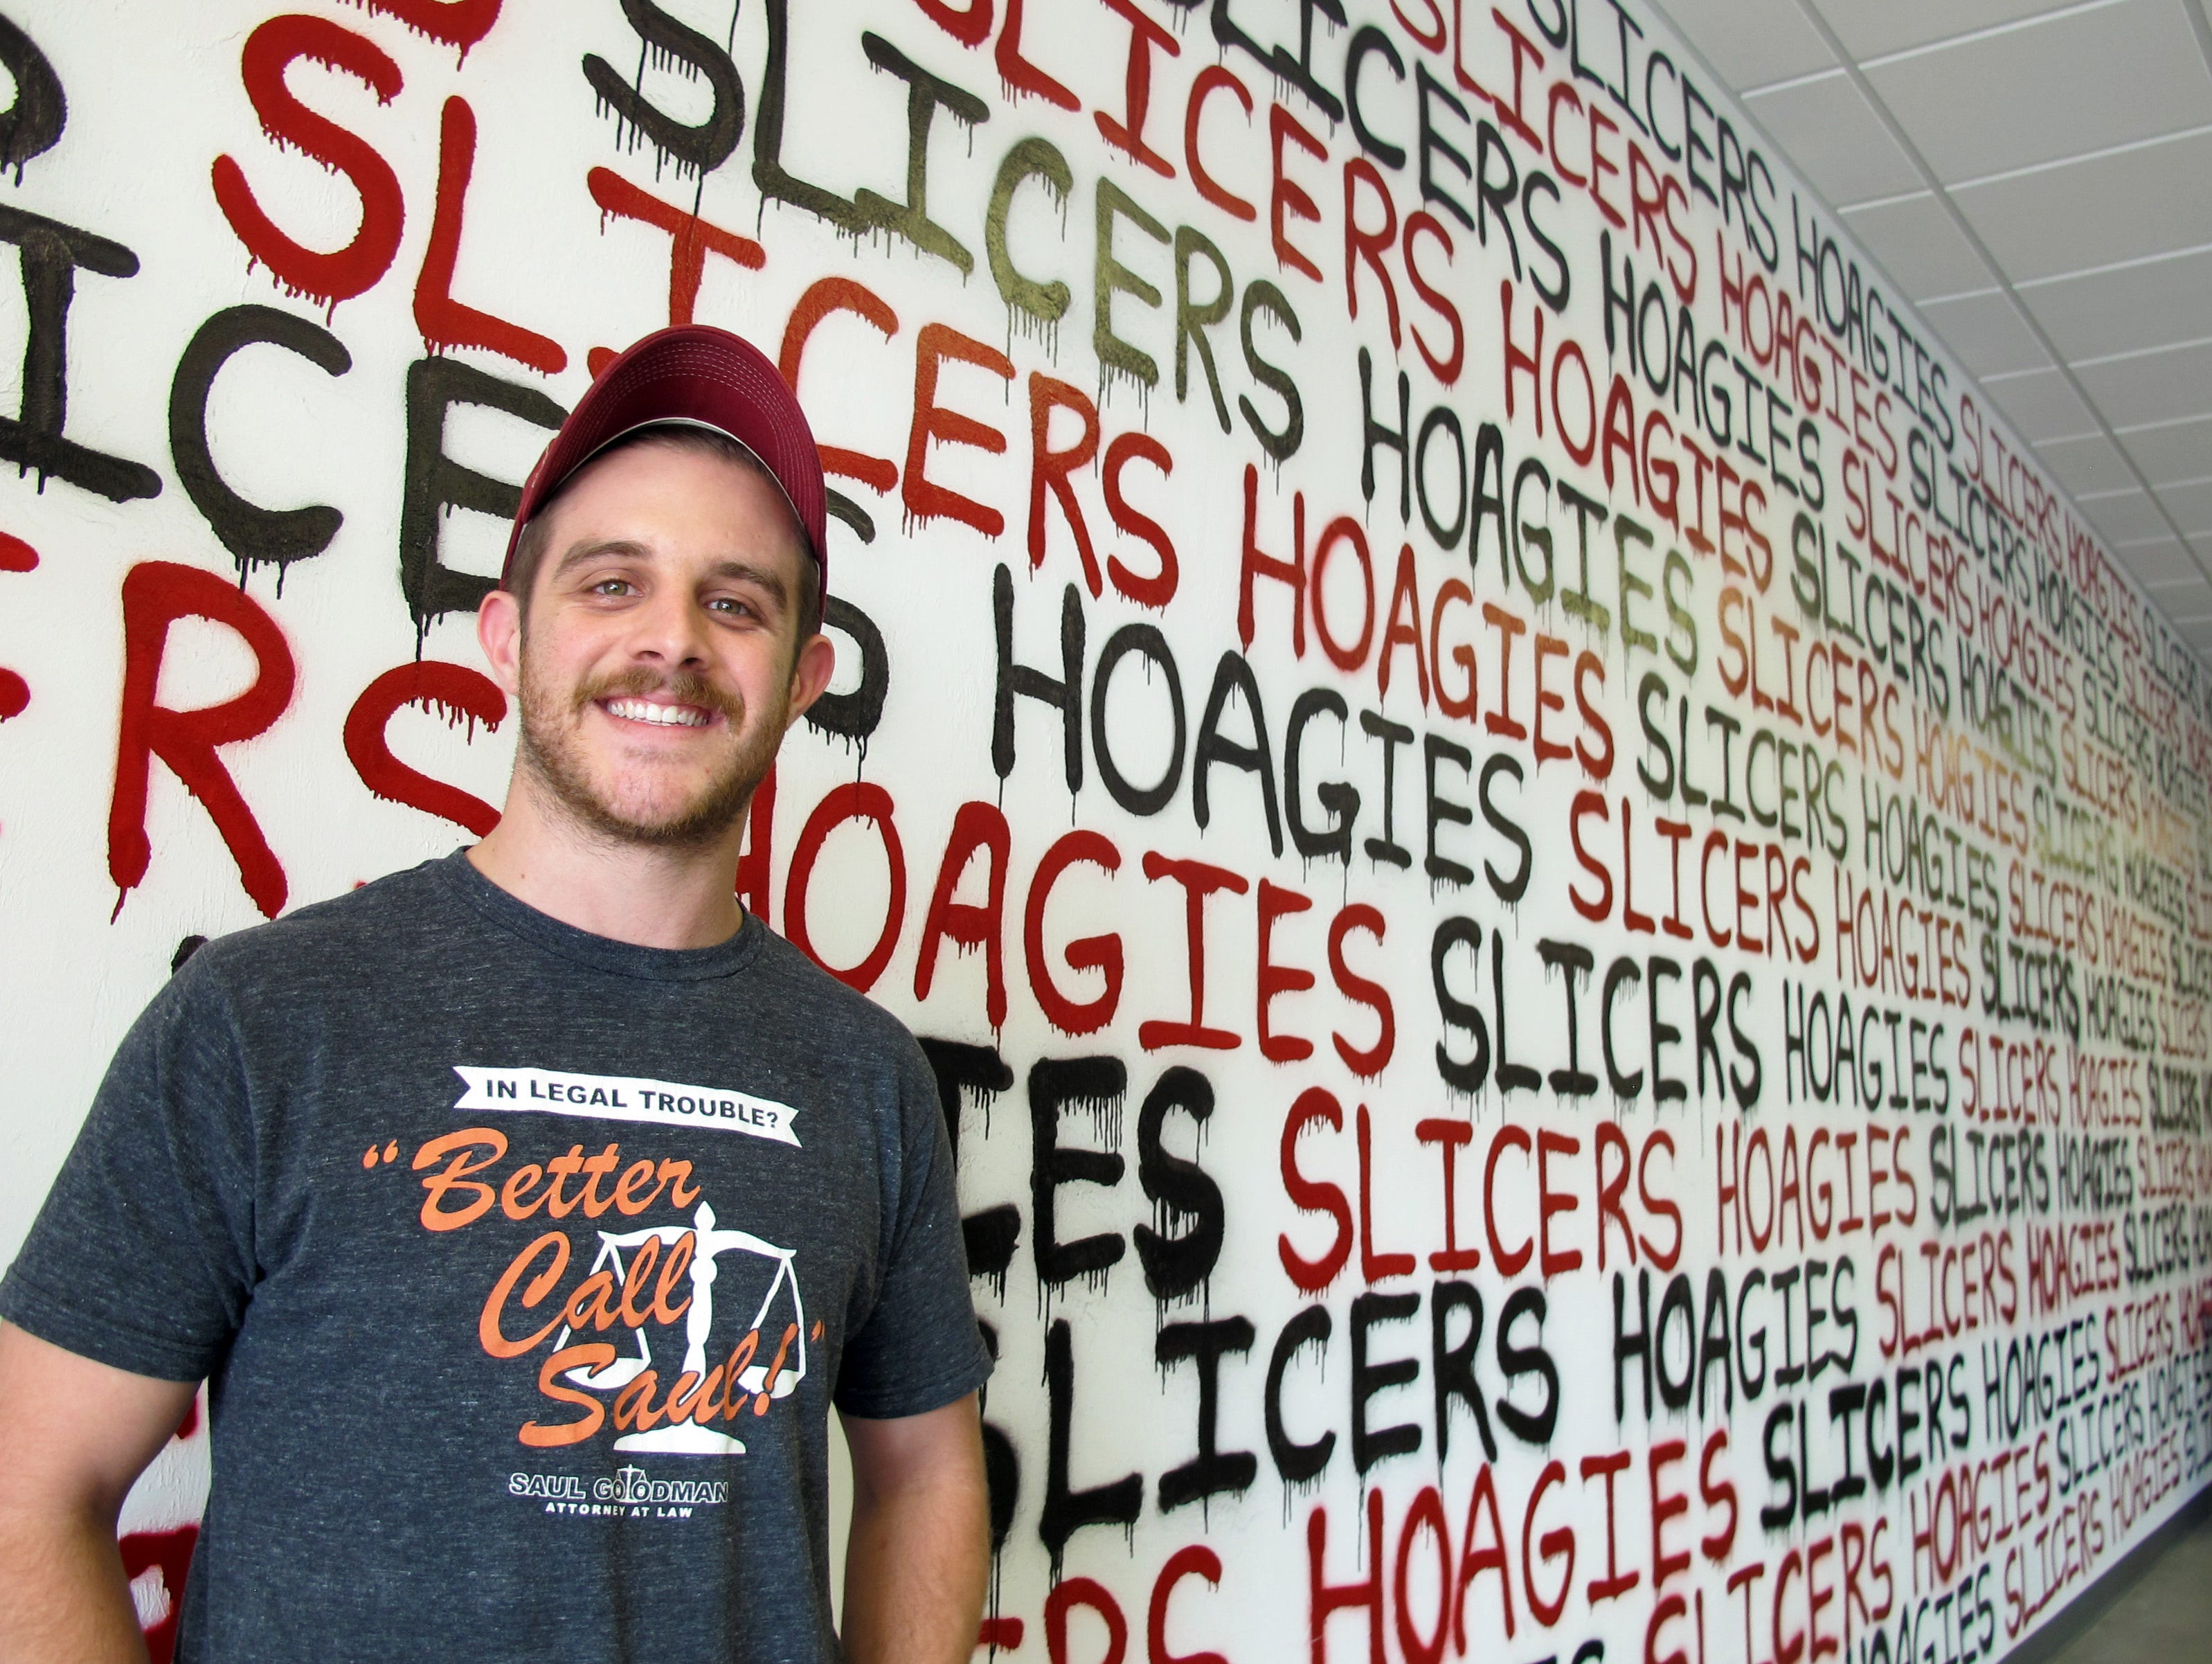 Billy Francis owns and operates Slicers Hoagies, which plans a second location in 2019 in University Village Shops off Ben Hill Griffin Parkway near Florida Gulf Coast University.